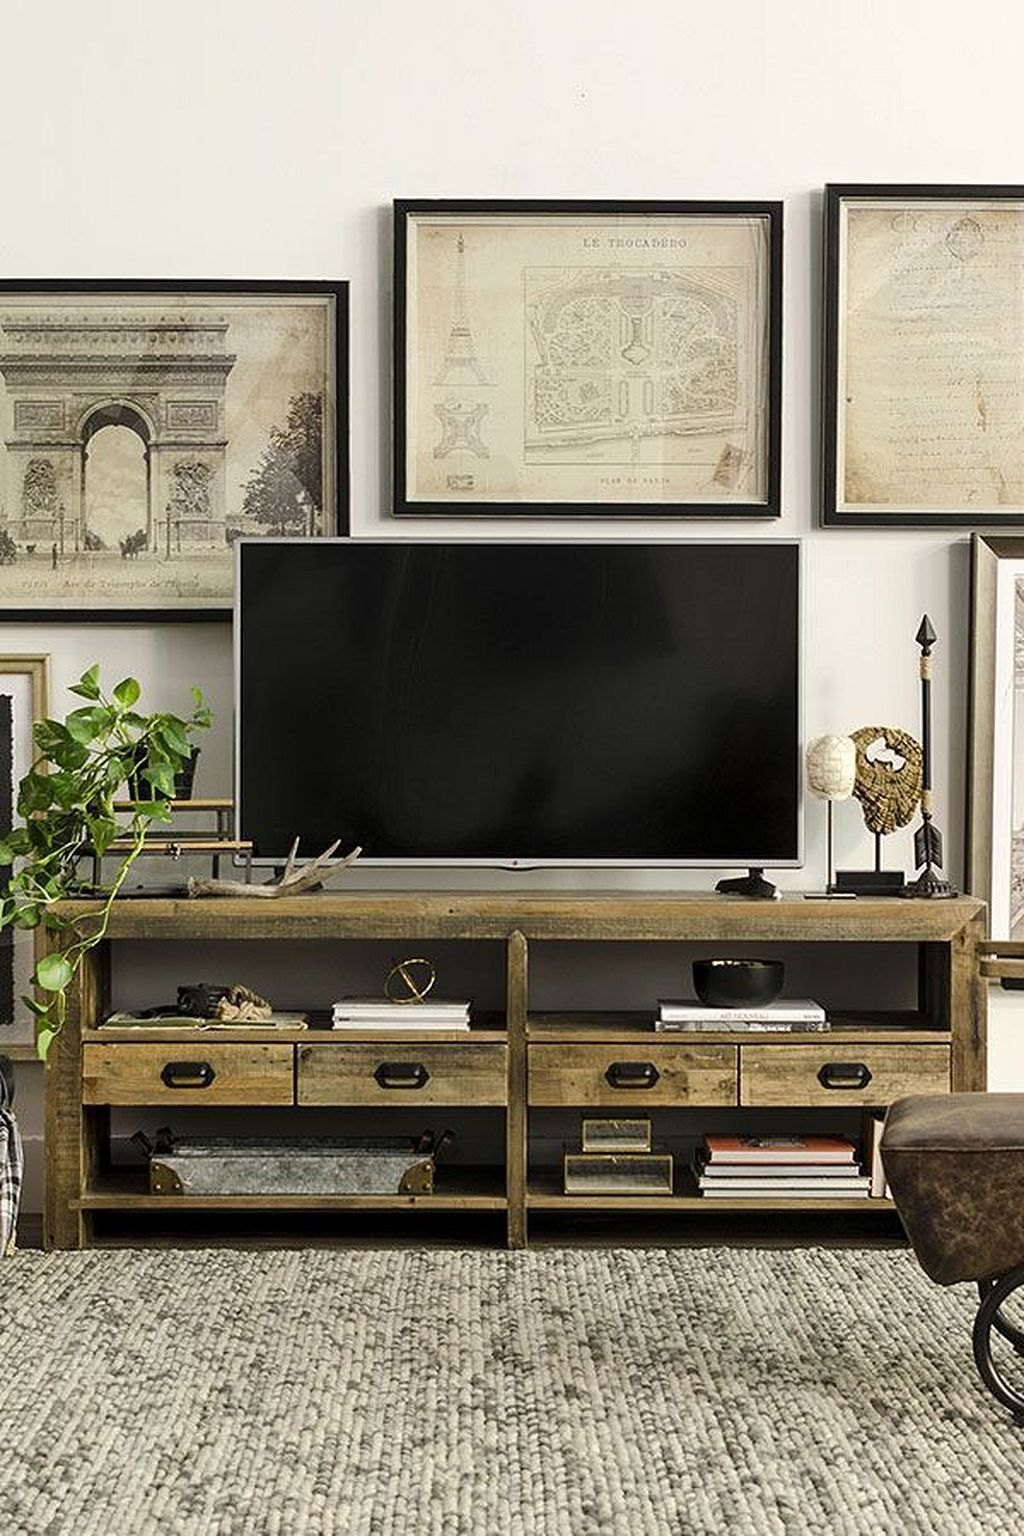 Stands Consoles Rustic Tv Ideas in 2020 Tv stand decor